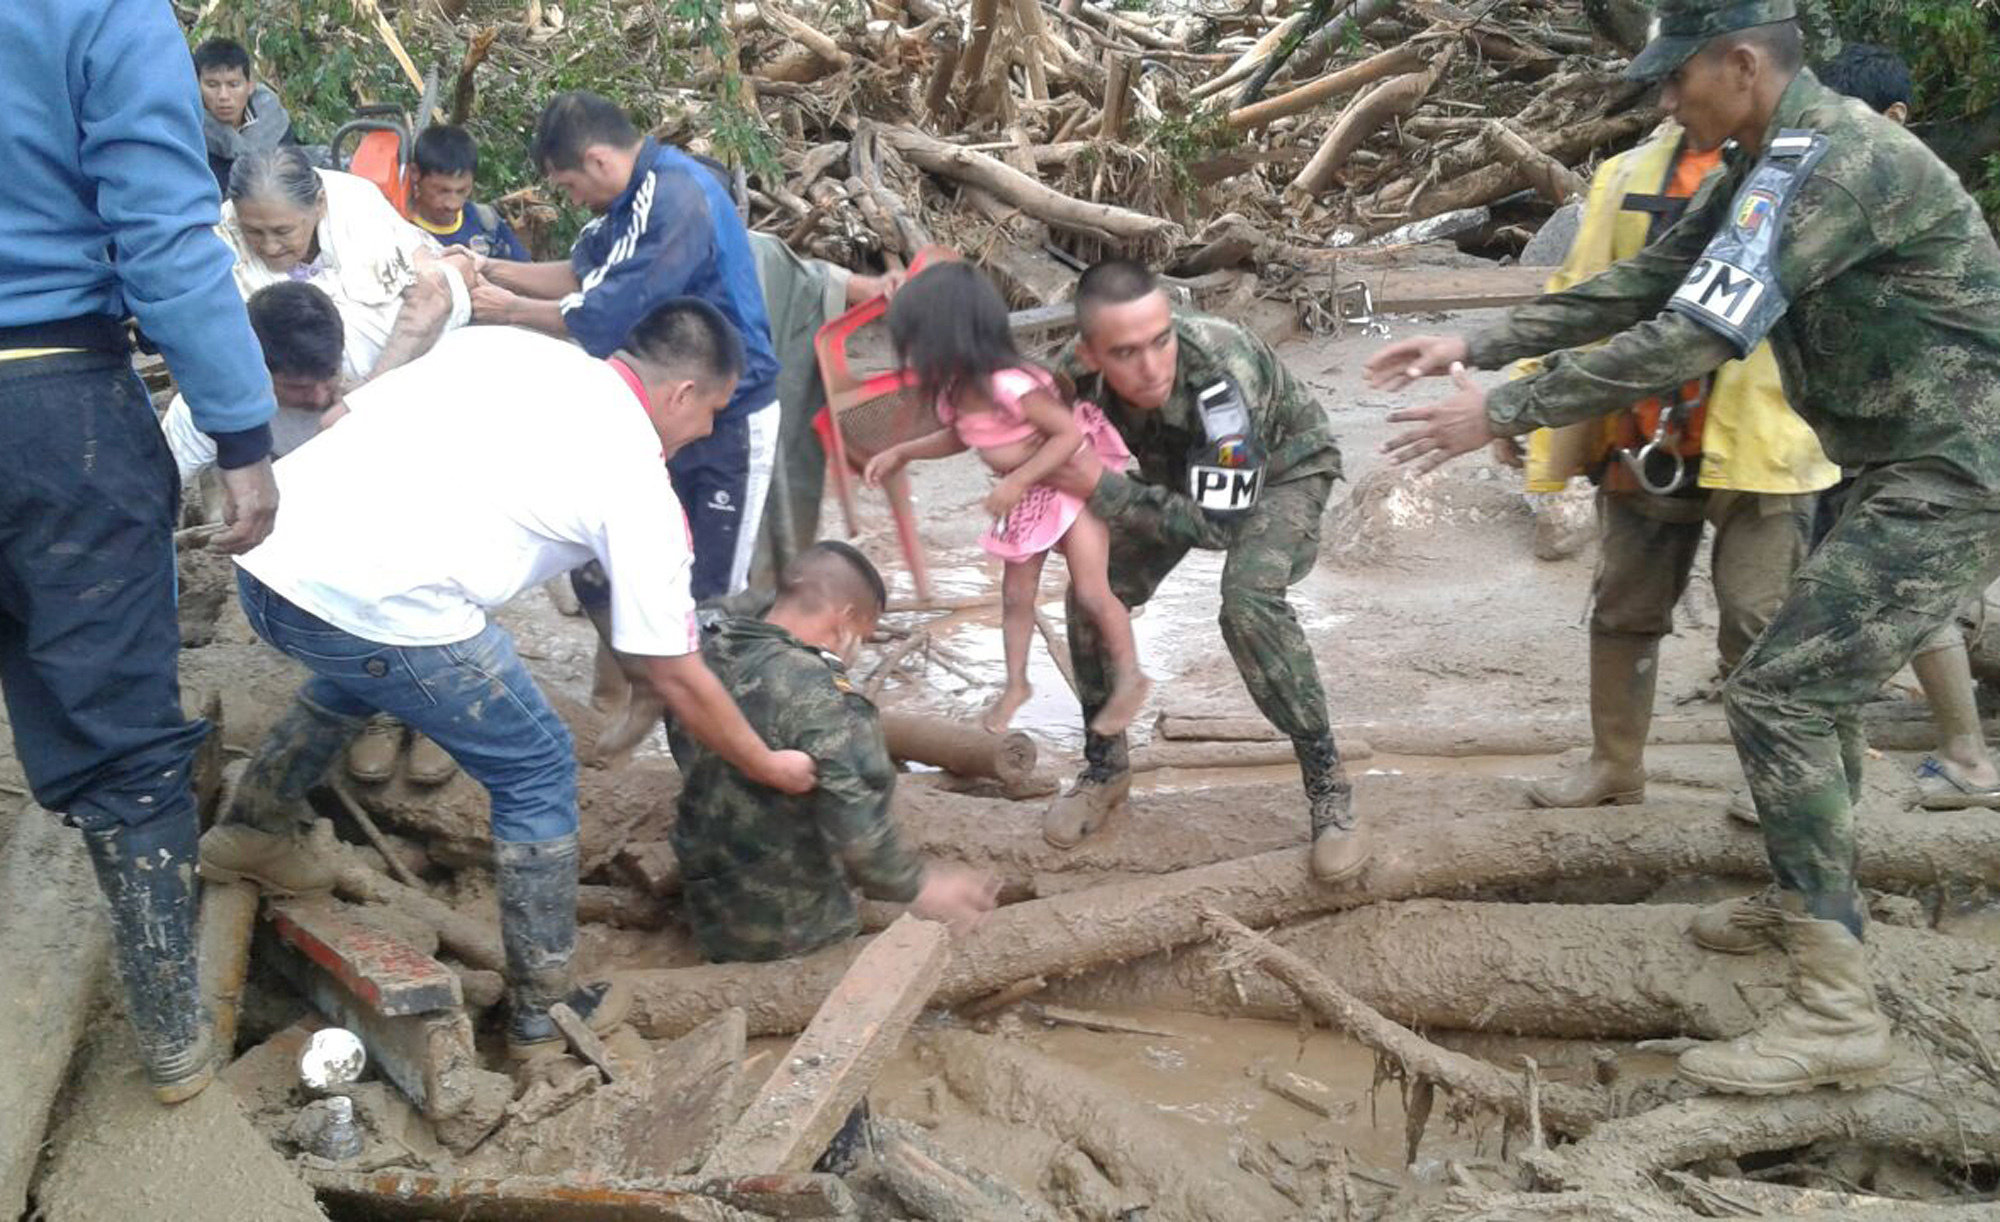 In this handout photo released by the Colombian National Army, soldiers and residents work together in rescue efforts in Mocoa, Colombia on April 1, 2017. (Colombian Army Photo via AP)